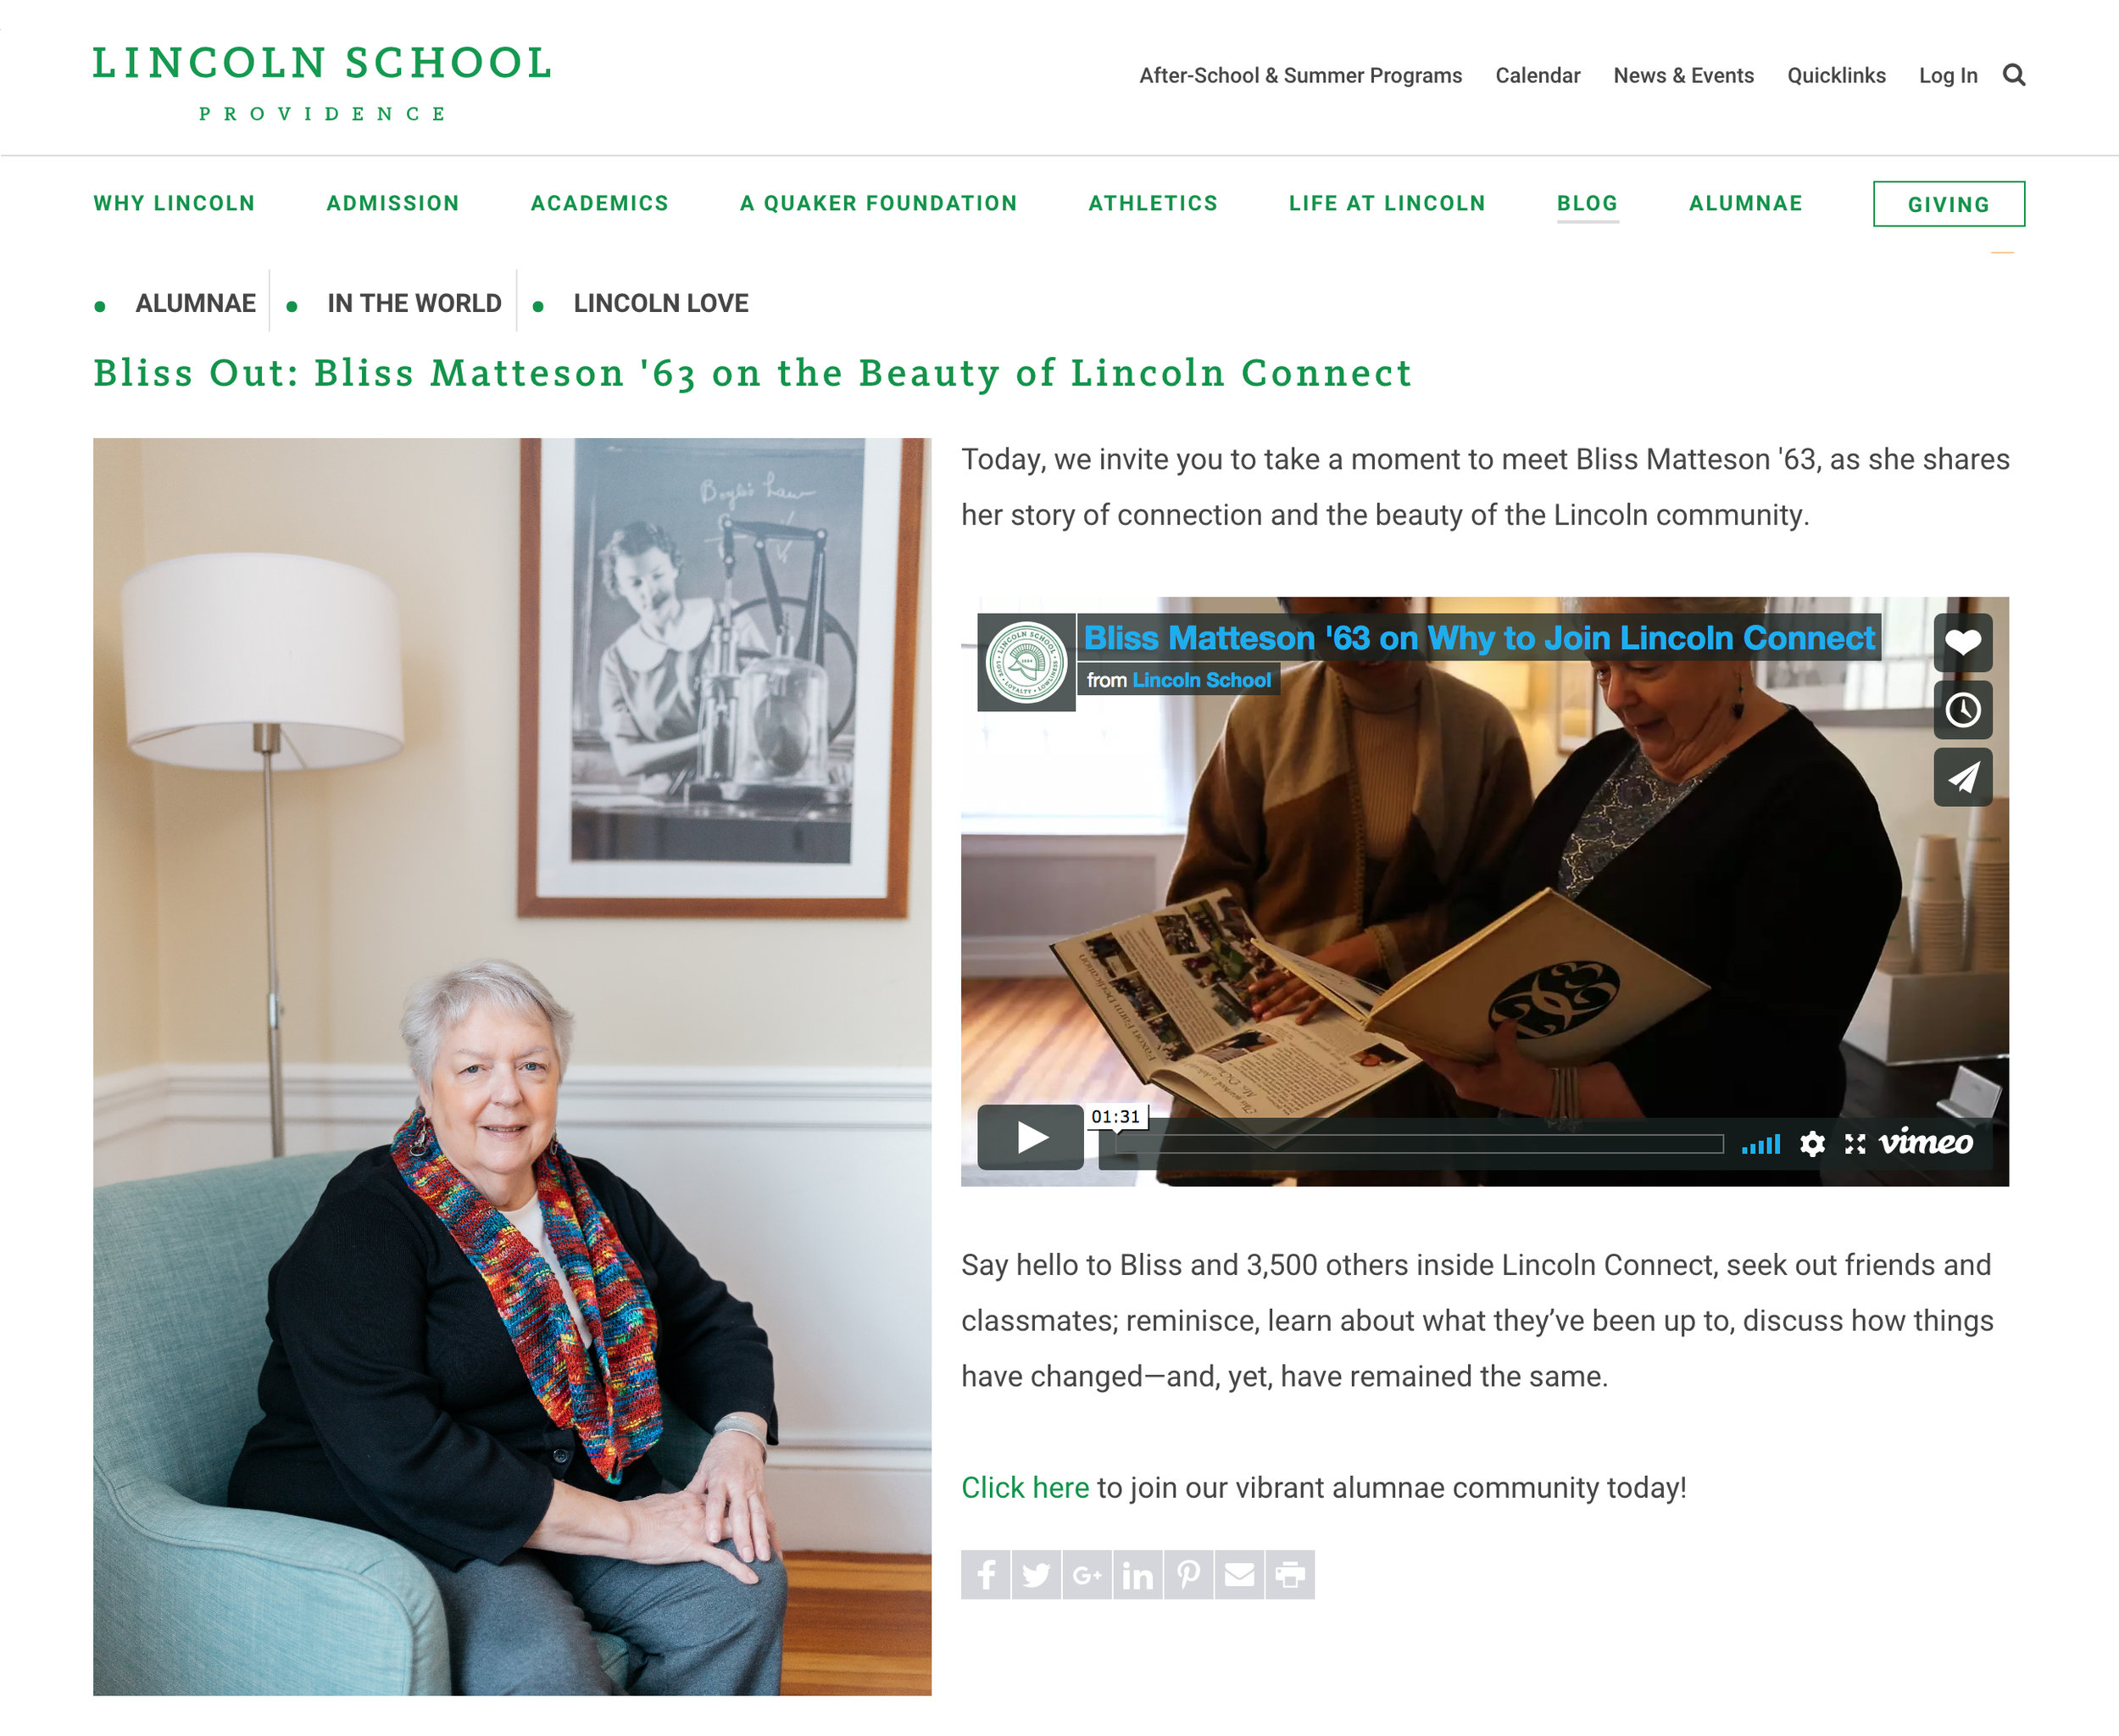 screencapture-lincolnschool-org-thegreenlight-details-board-the-green-light-blog-post-bliss-out-bliss-matteson-63-on-the-beauty-of-lincoln-connect-2018-04-03-13_03_38.jpg